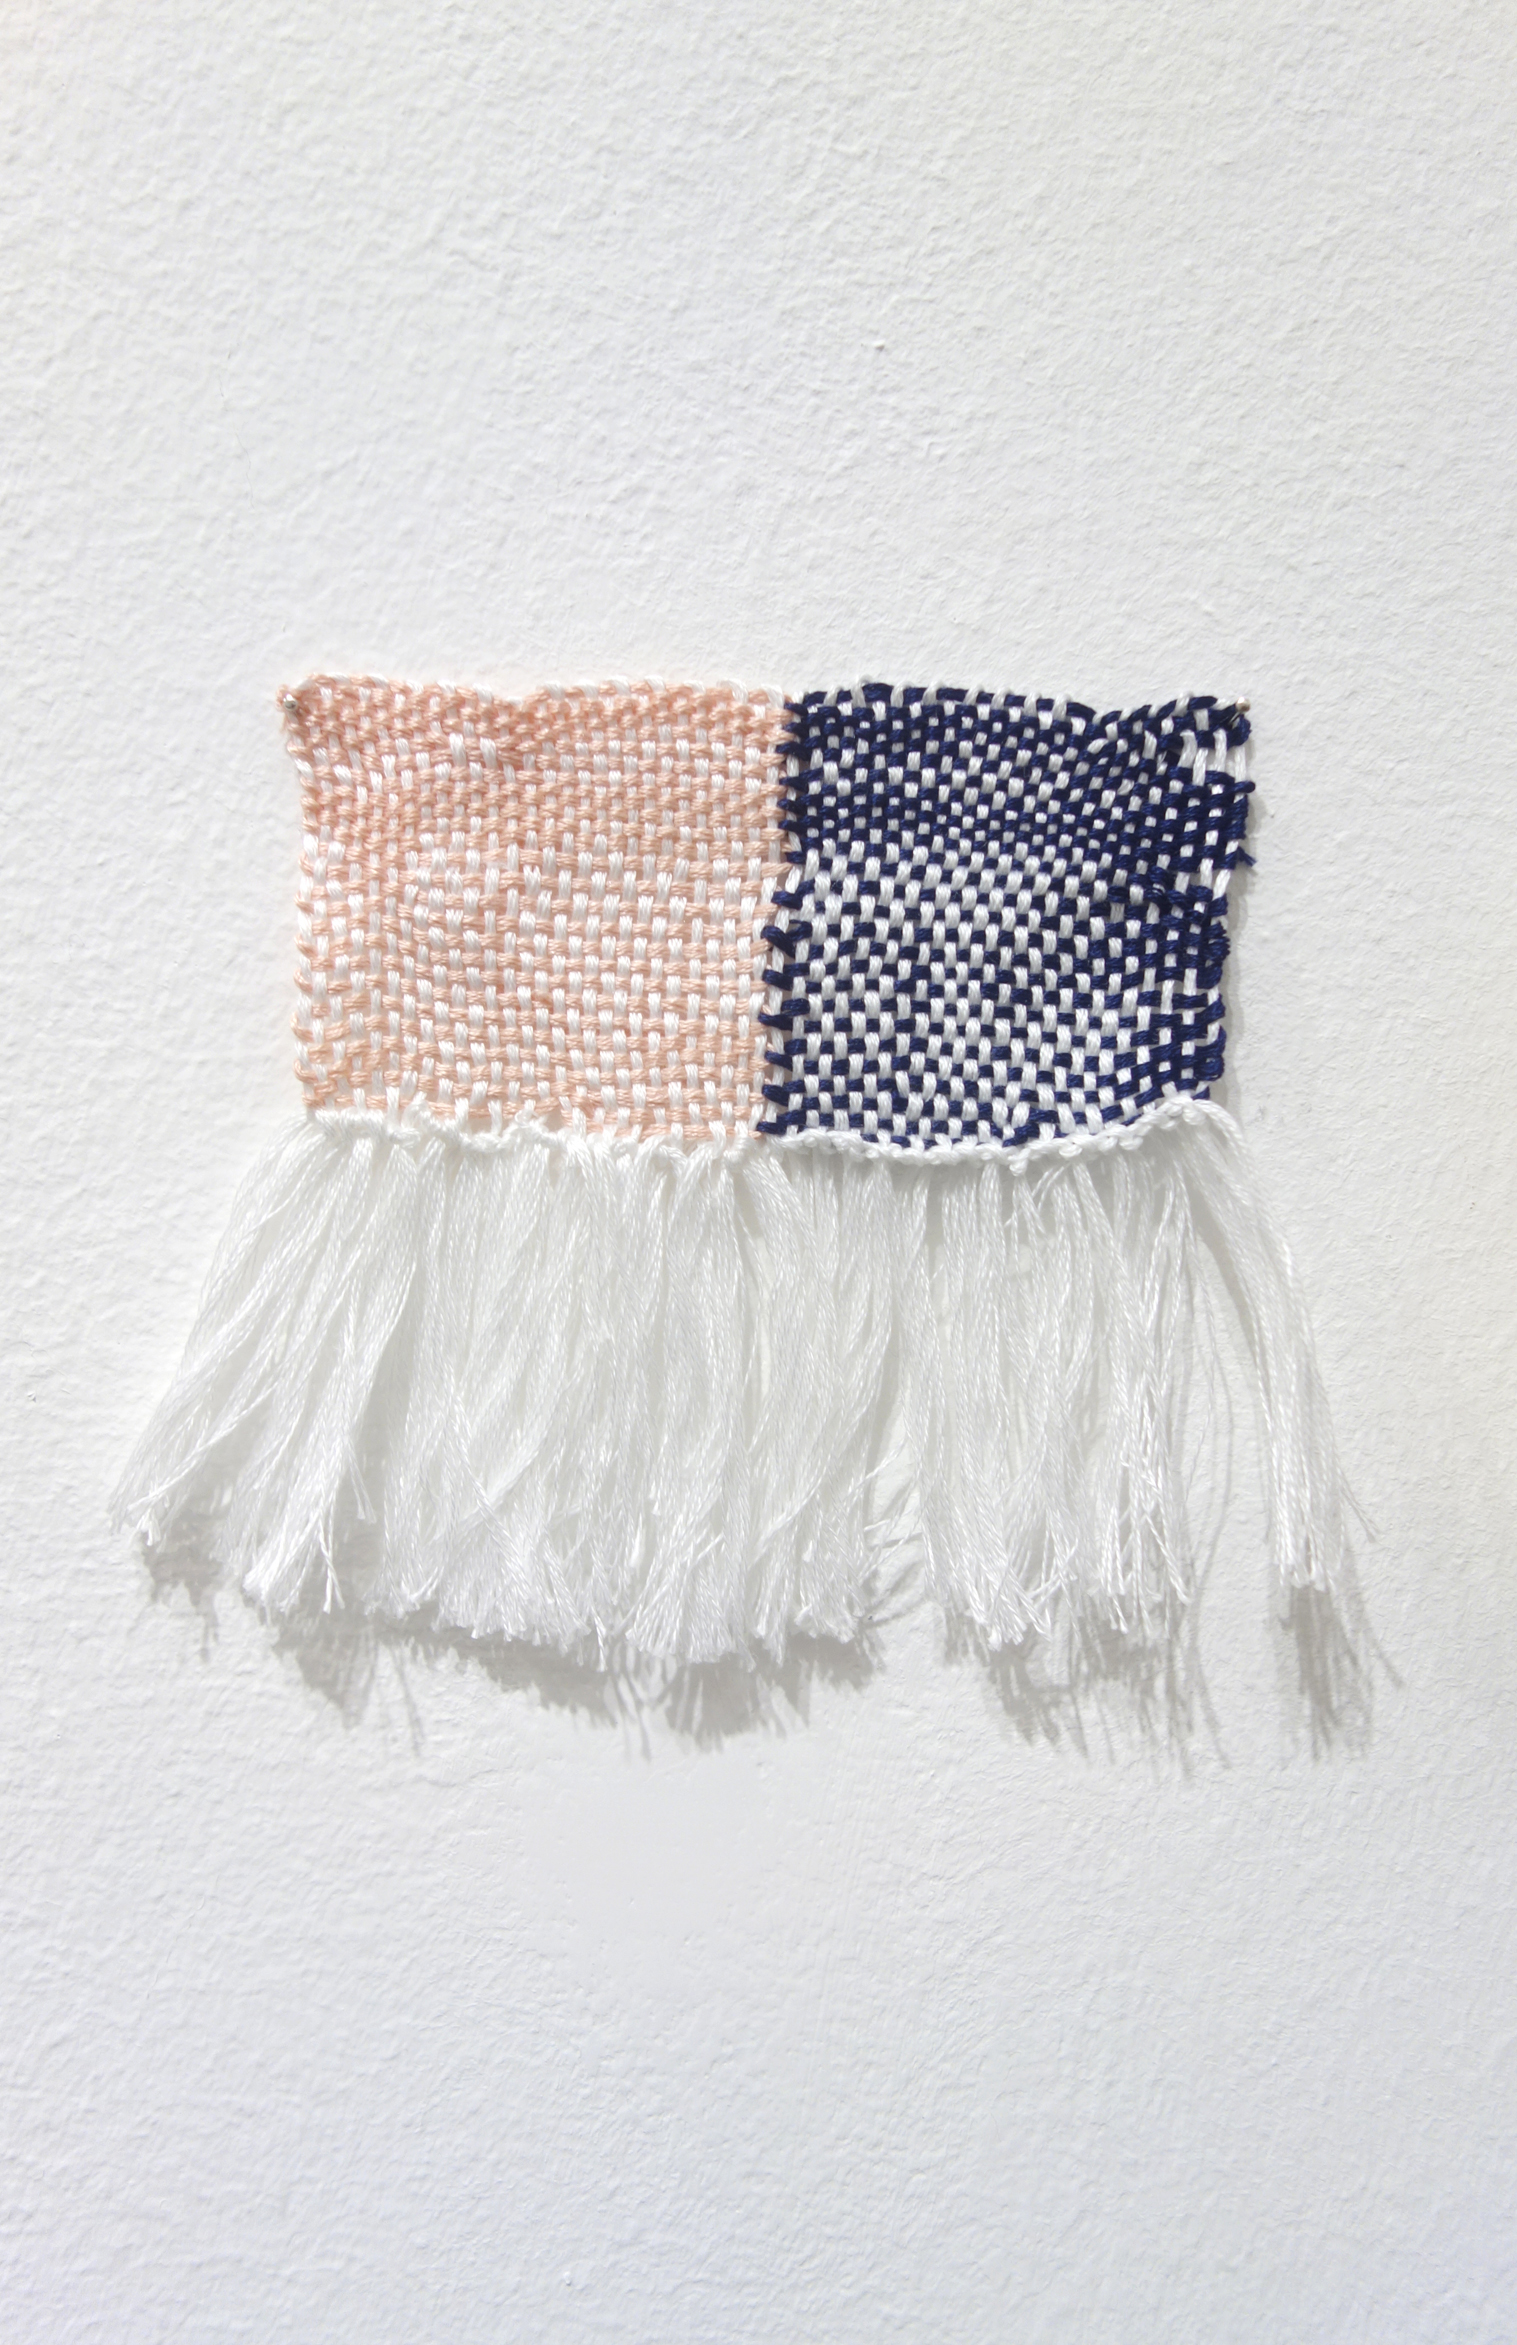 Izziyana Suhaimi, Small Studies of an Everyday Practice III, 2014, Cotton thread; woven, H11 x W10 cm.jpg